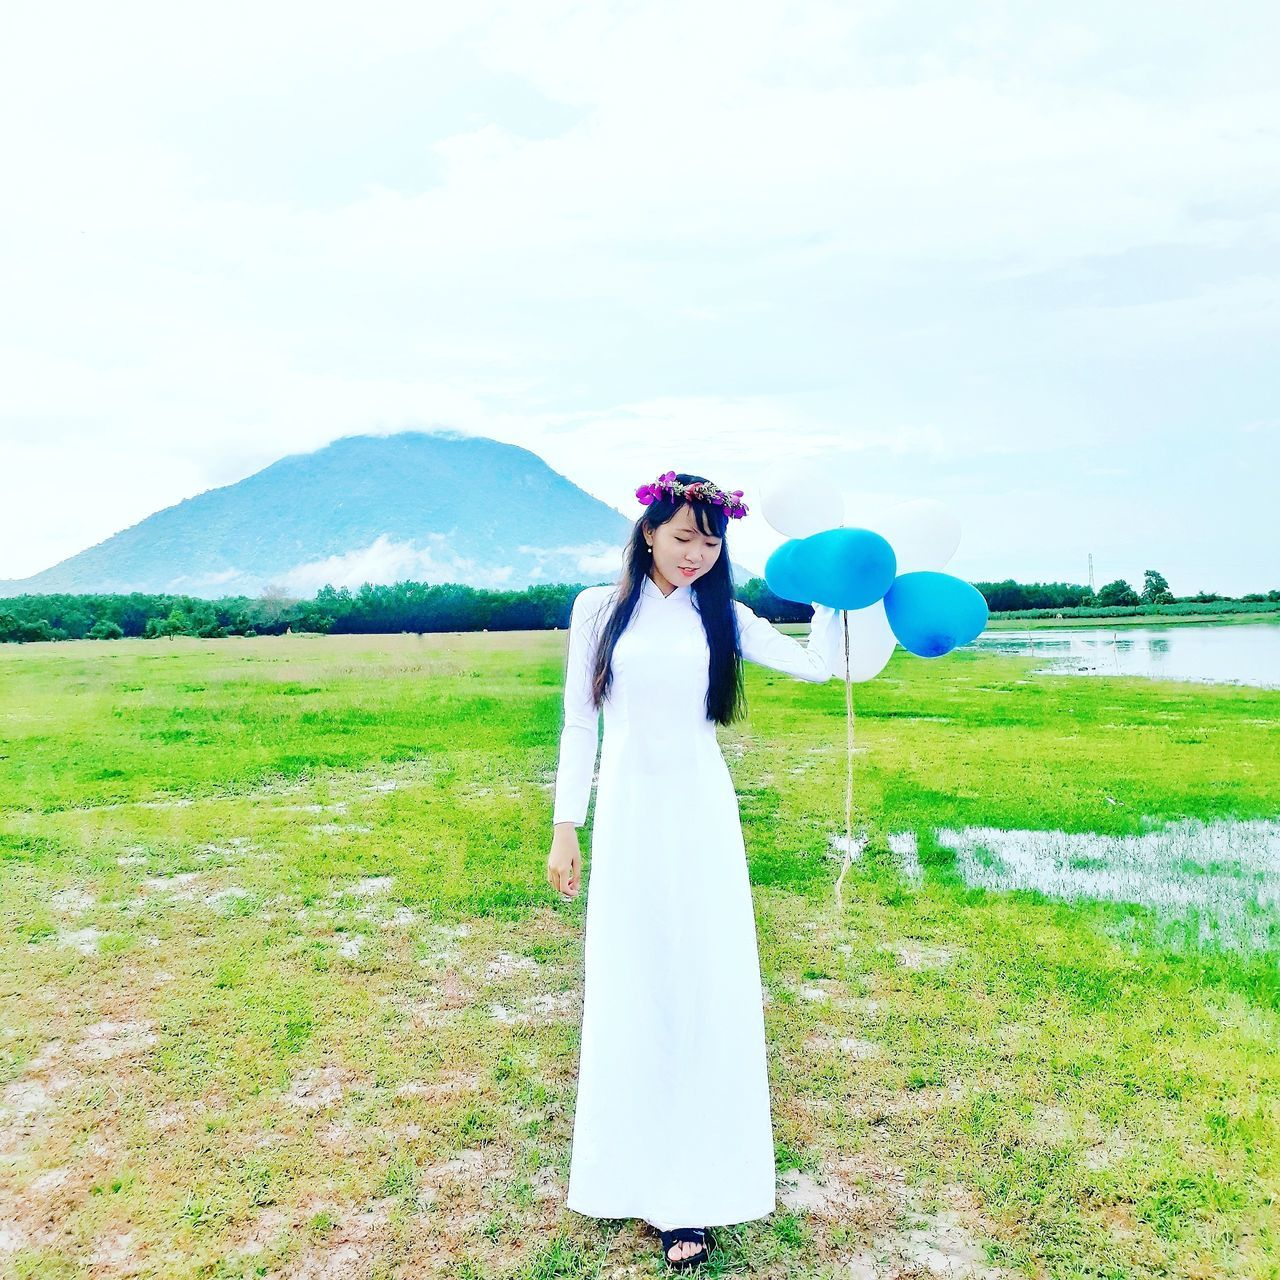 standing, real people, one person, balloon, green color, grass, nature, sky, field, young adult, cloud - sky, young women, beauty in nature, day, portrait, looking at camera, happiness, scenics, outdoors, lifestyles, smiling, growth, women, beautiful woman, full length, bride, people